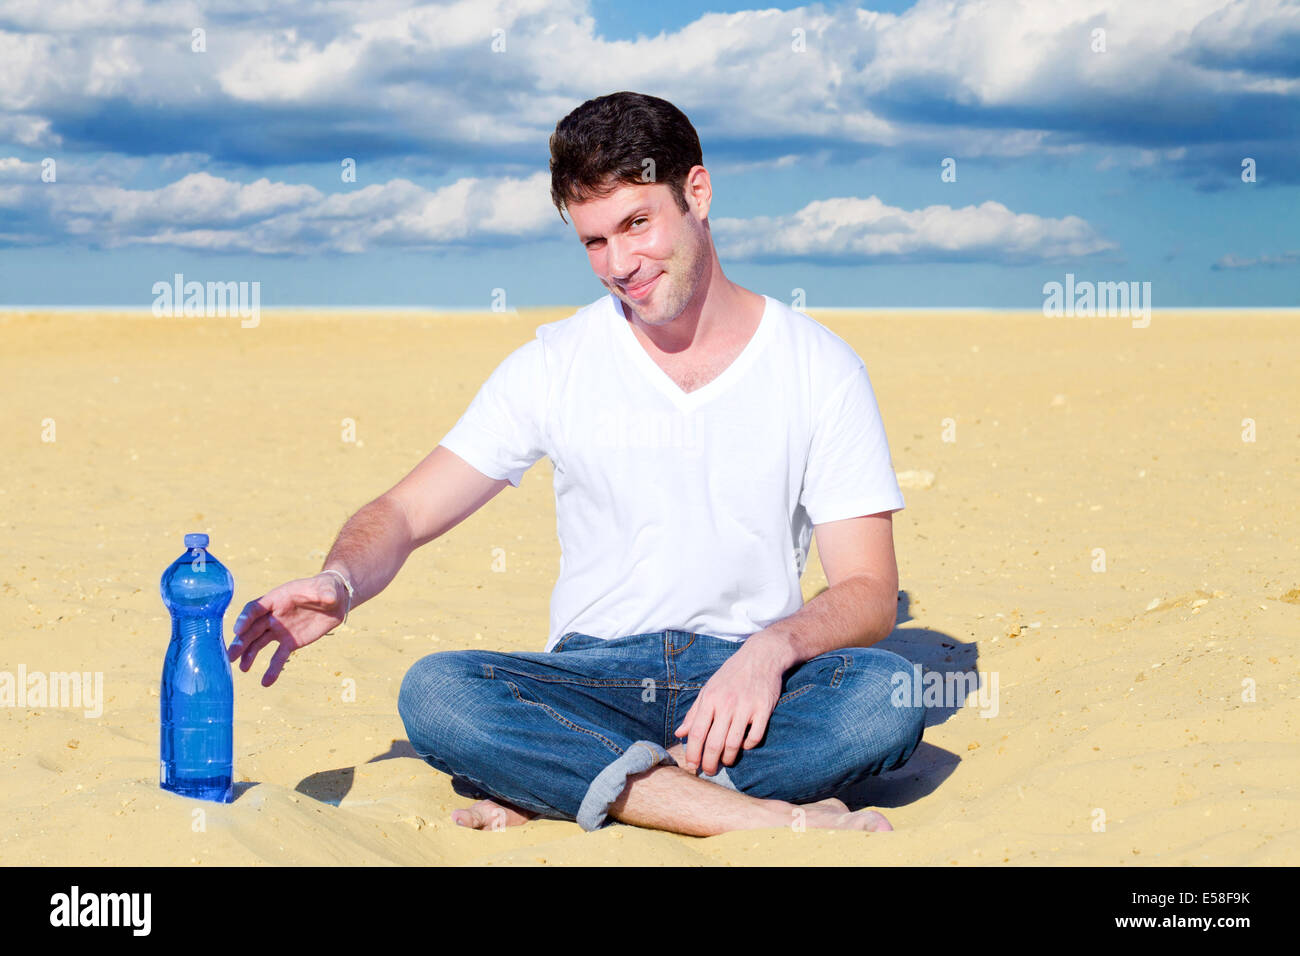 Handsome man reaching for a bottle of water in desert - Stock Image